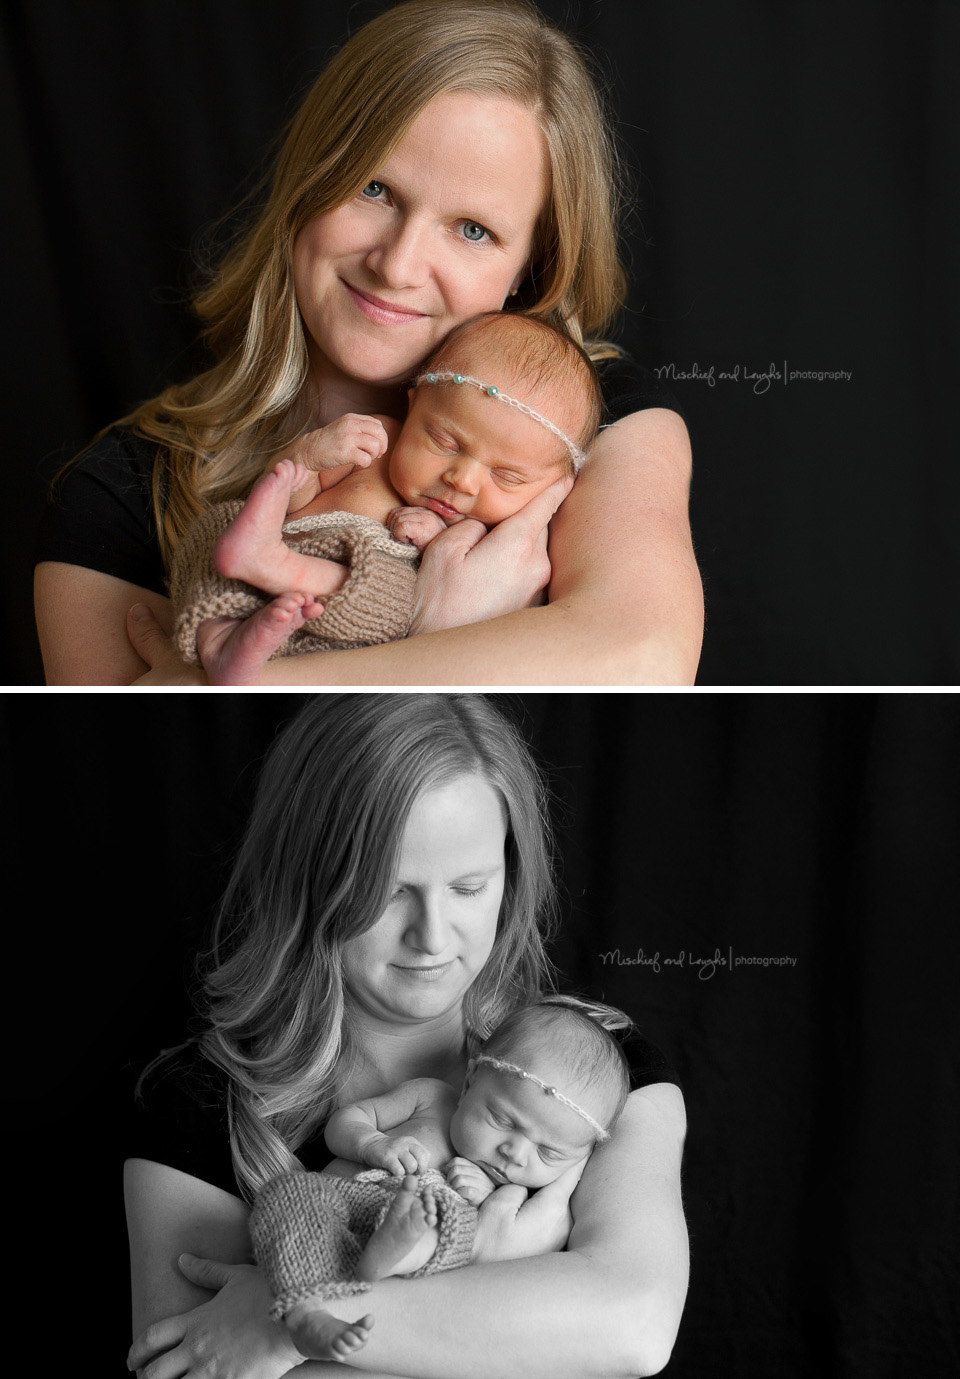 Mom and Newborn baby. Mischief and Laughs Photography, Cincinnati OH